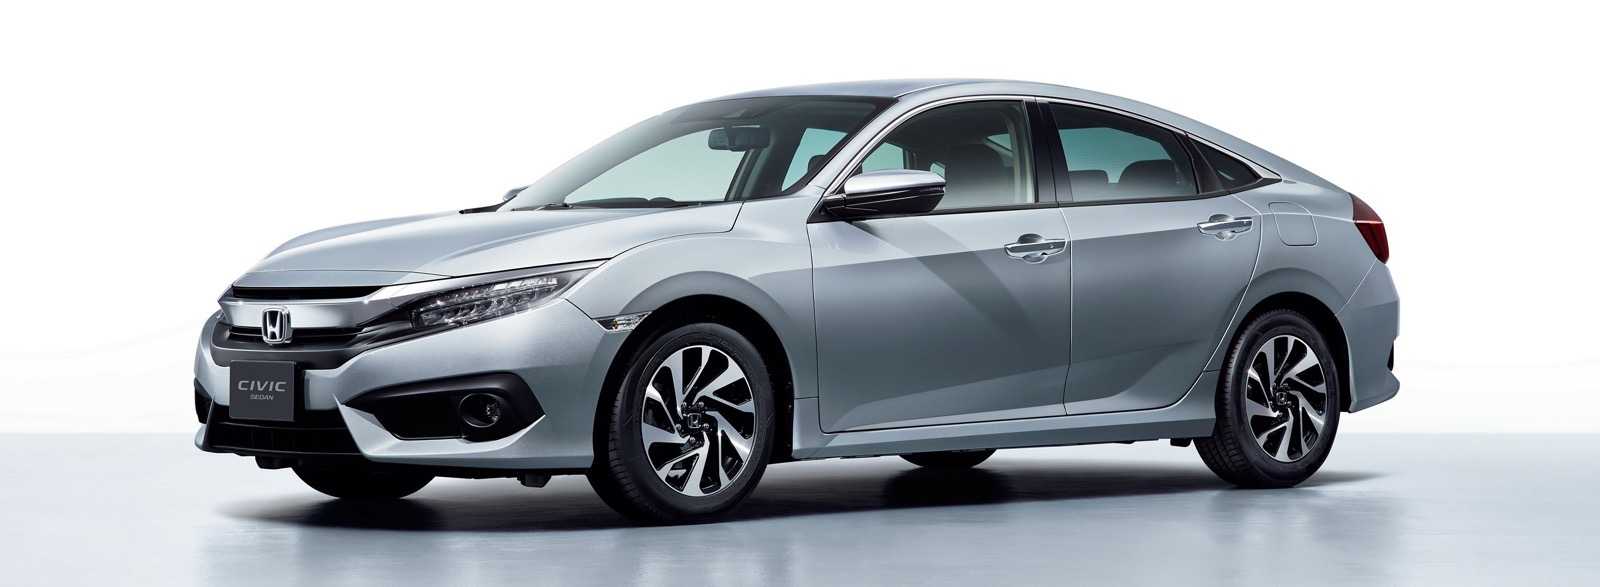 Honda_Civic_Japan_04